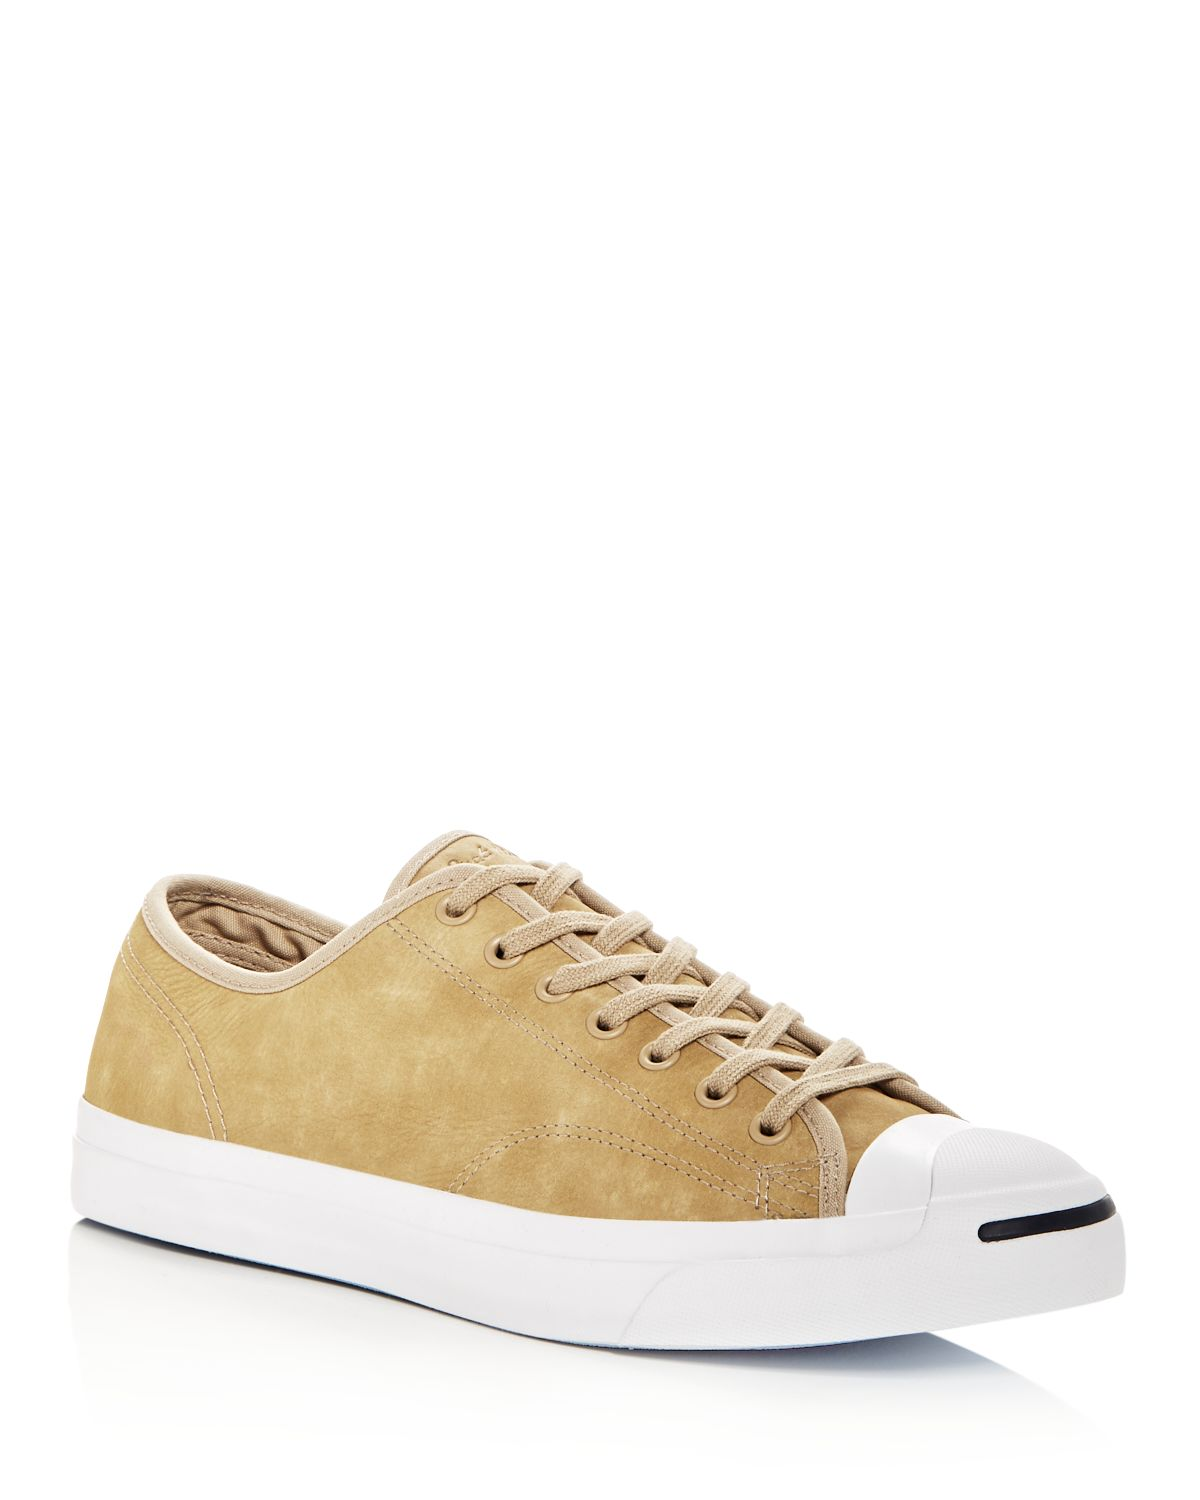 Converse Men's Jack Purcell Vintage Suede Lace Up Sneakers